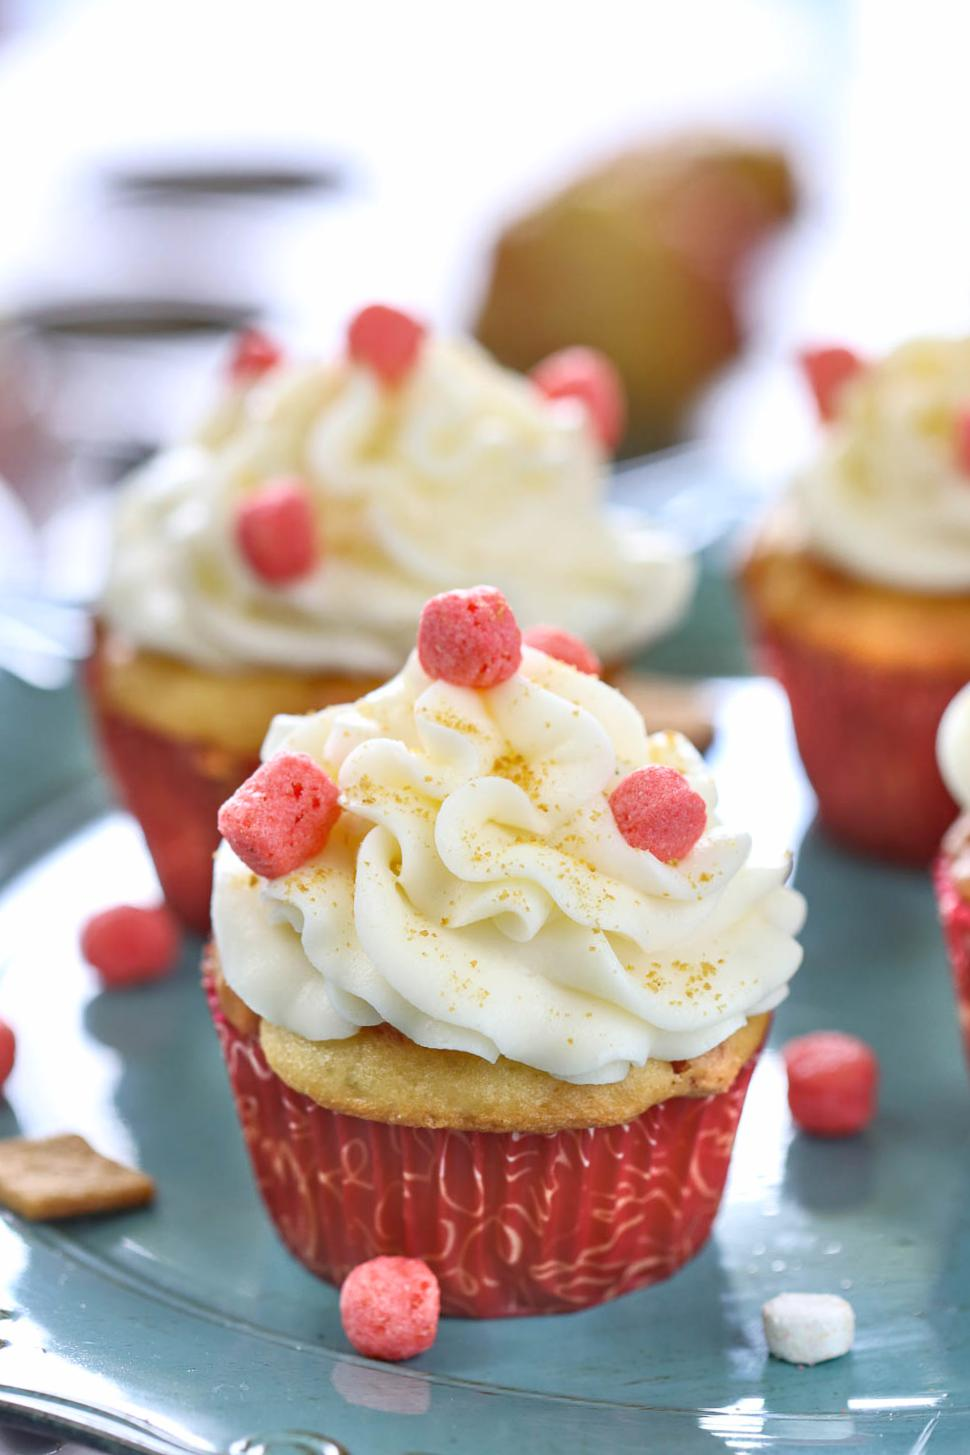 Eggless Strawberry Cupcakes - Ruchiskitchen